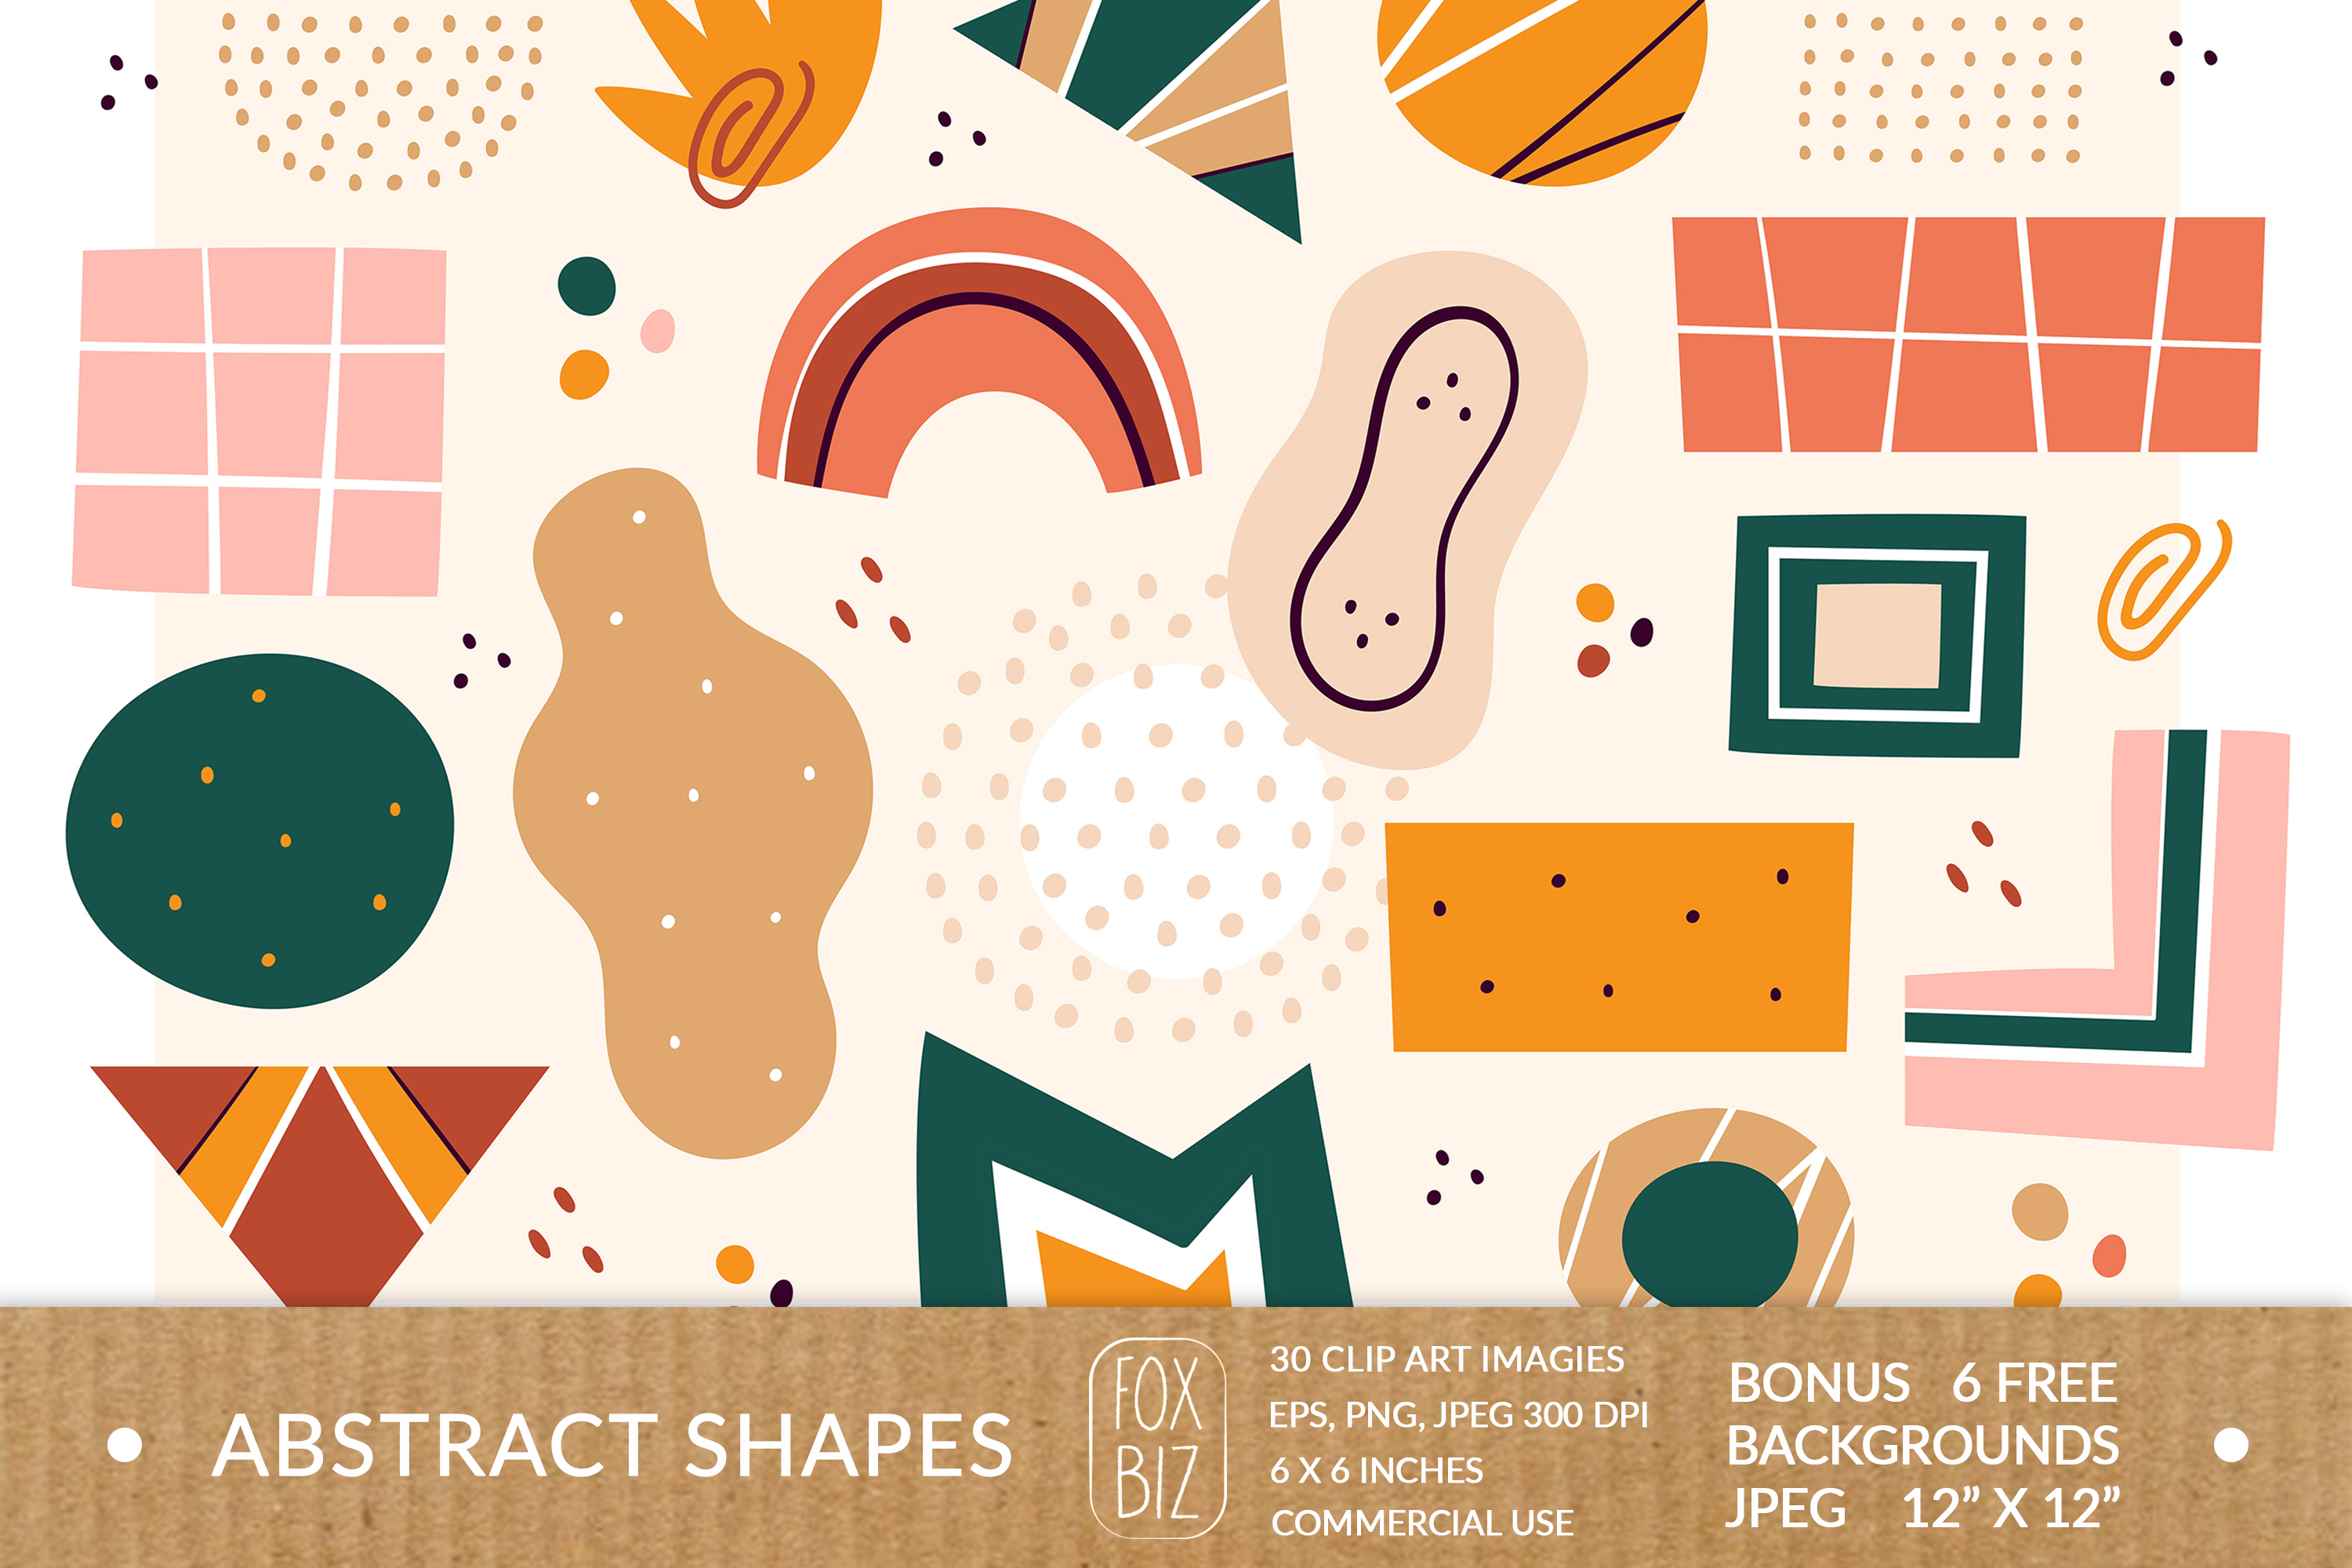 Download Free Abstract Shapes Clipart Digital Prints Graphic By Foxbiz for Cricut Explore, Silhouette and other cutting machines.